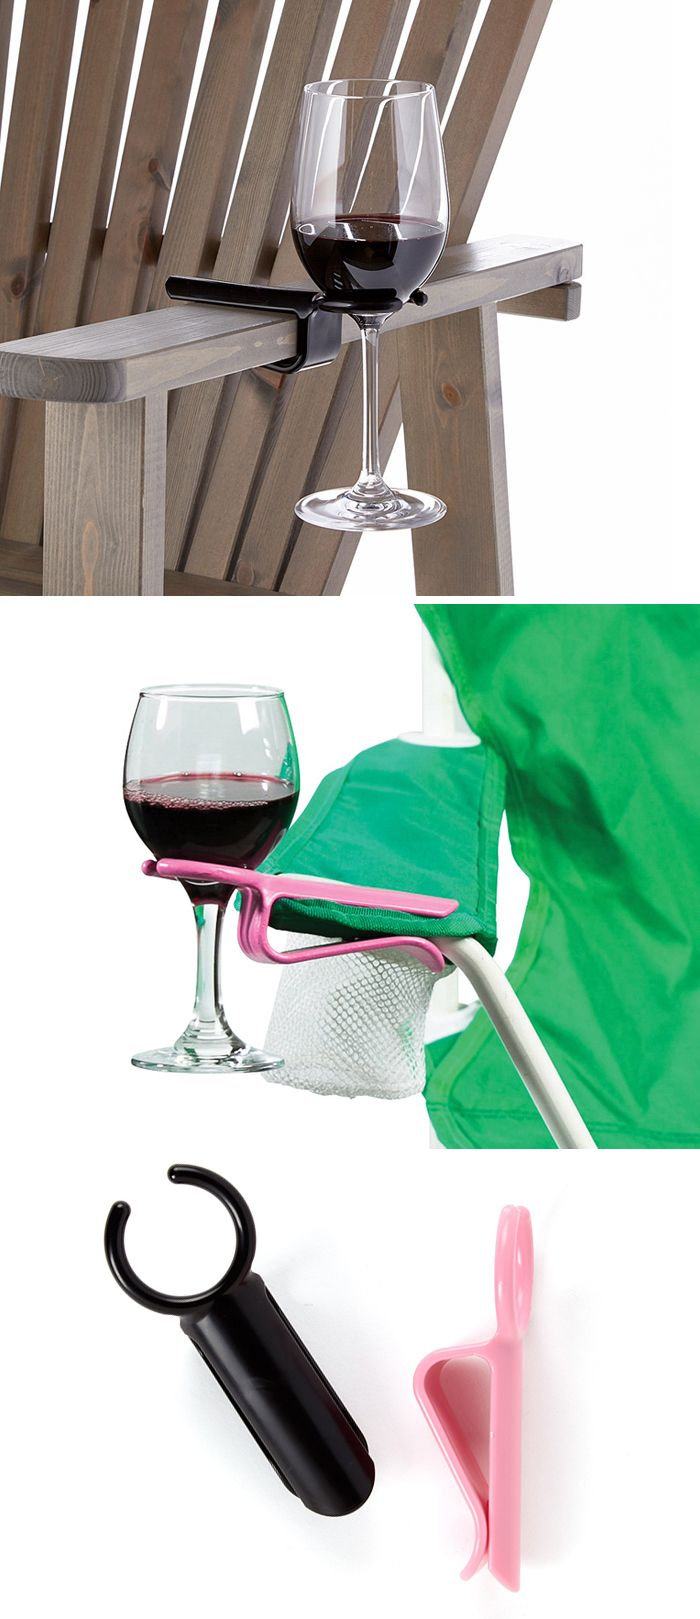 Clip on wine holder hook - fits on any chair. Brilliant! #product_design